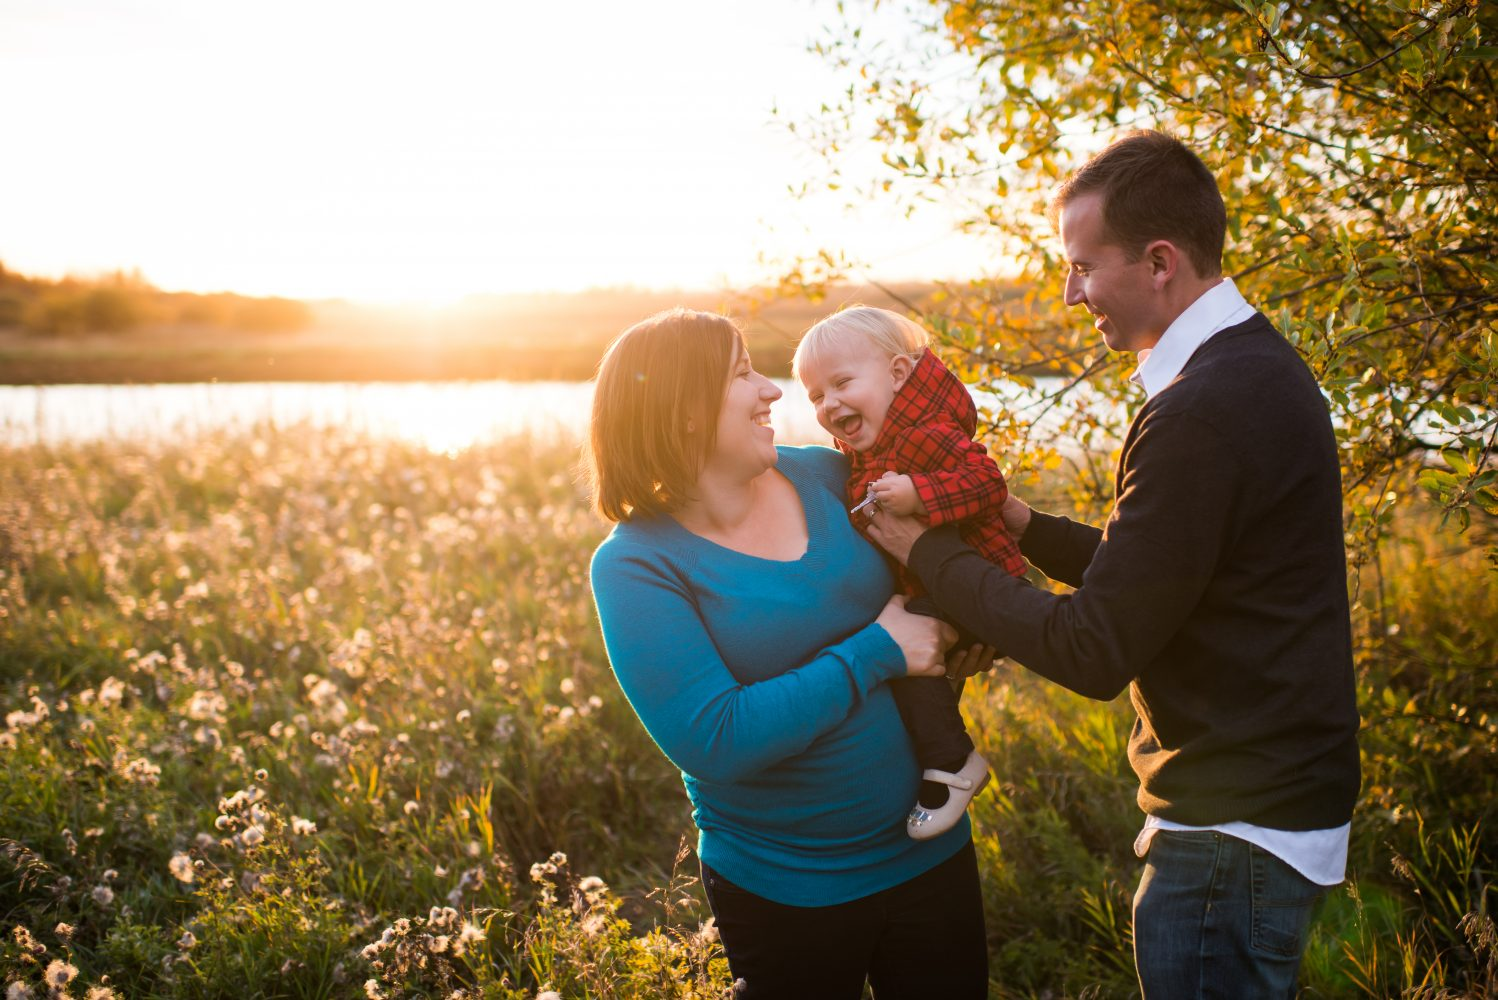 Golden hour family photo session at Lois Hole Provincial Park